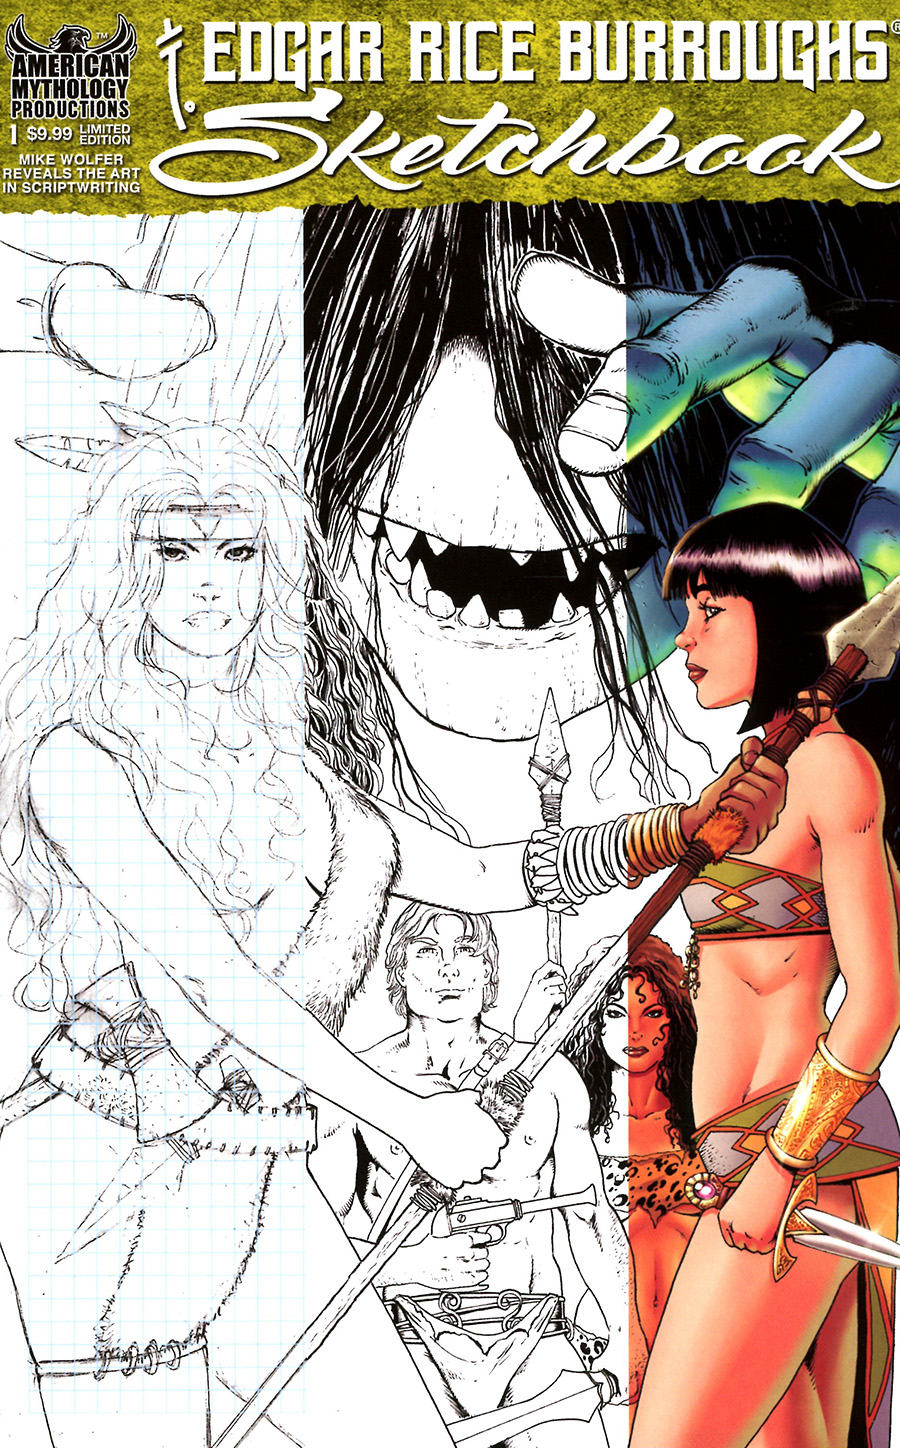 Edgar Rice Burroughs Sketchbook 2021 #1 Cover B Limited Edition Mike Wolfer Variant Cover